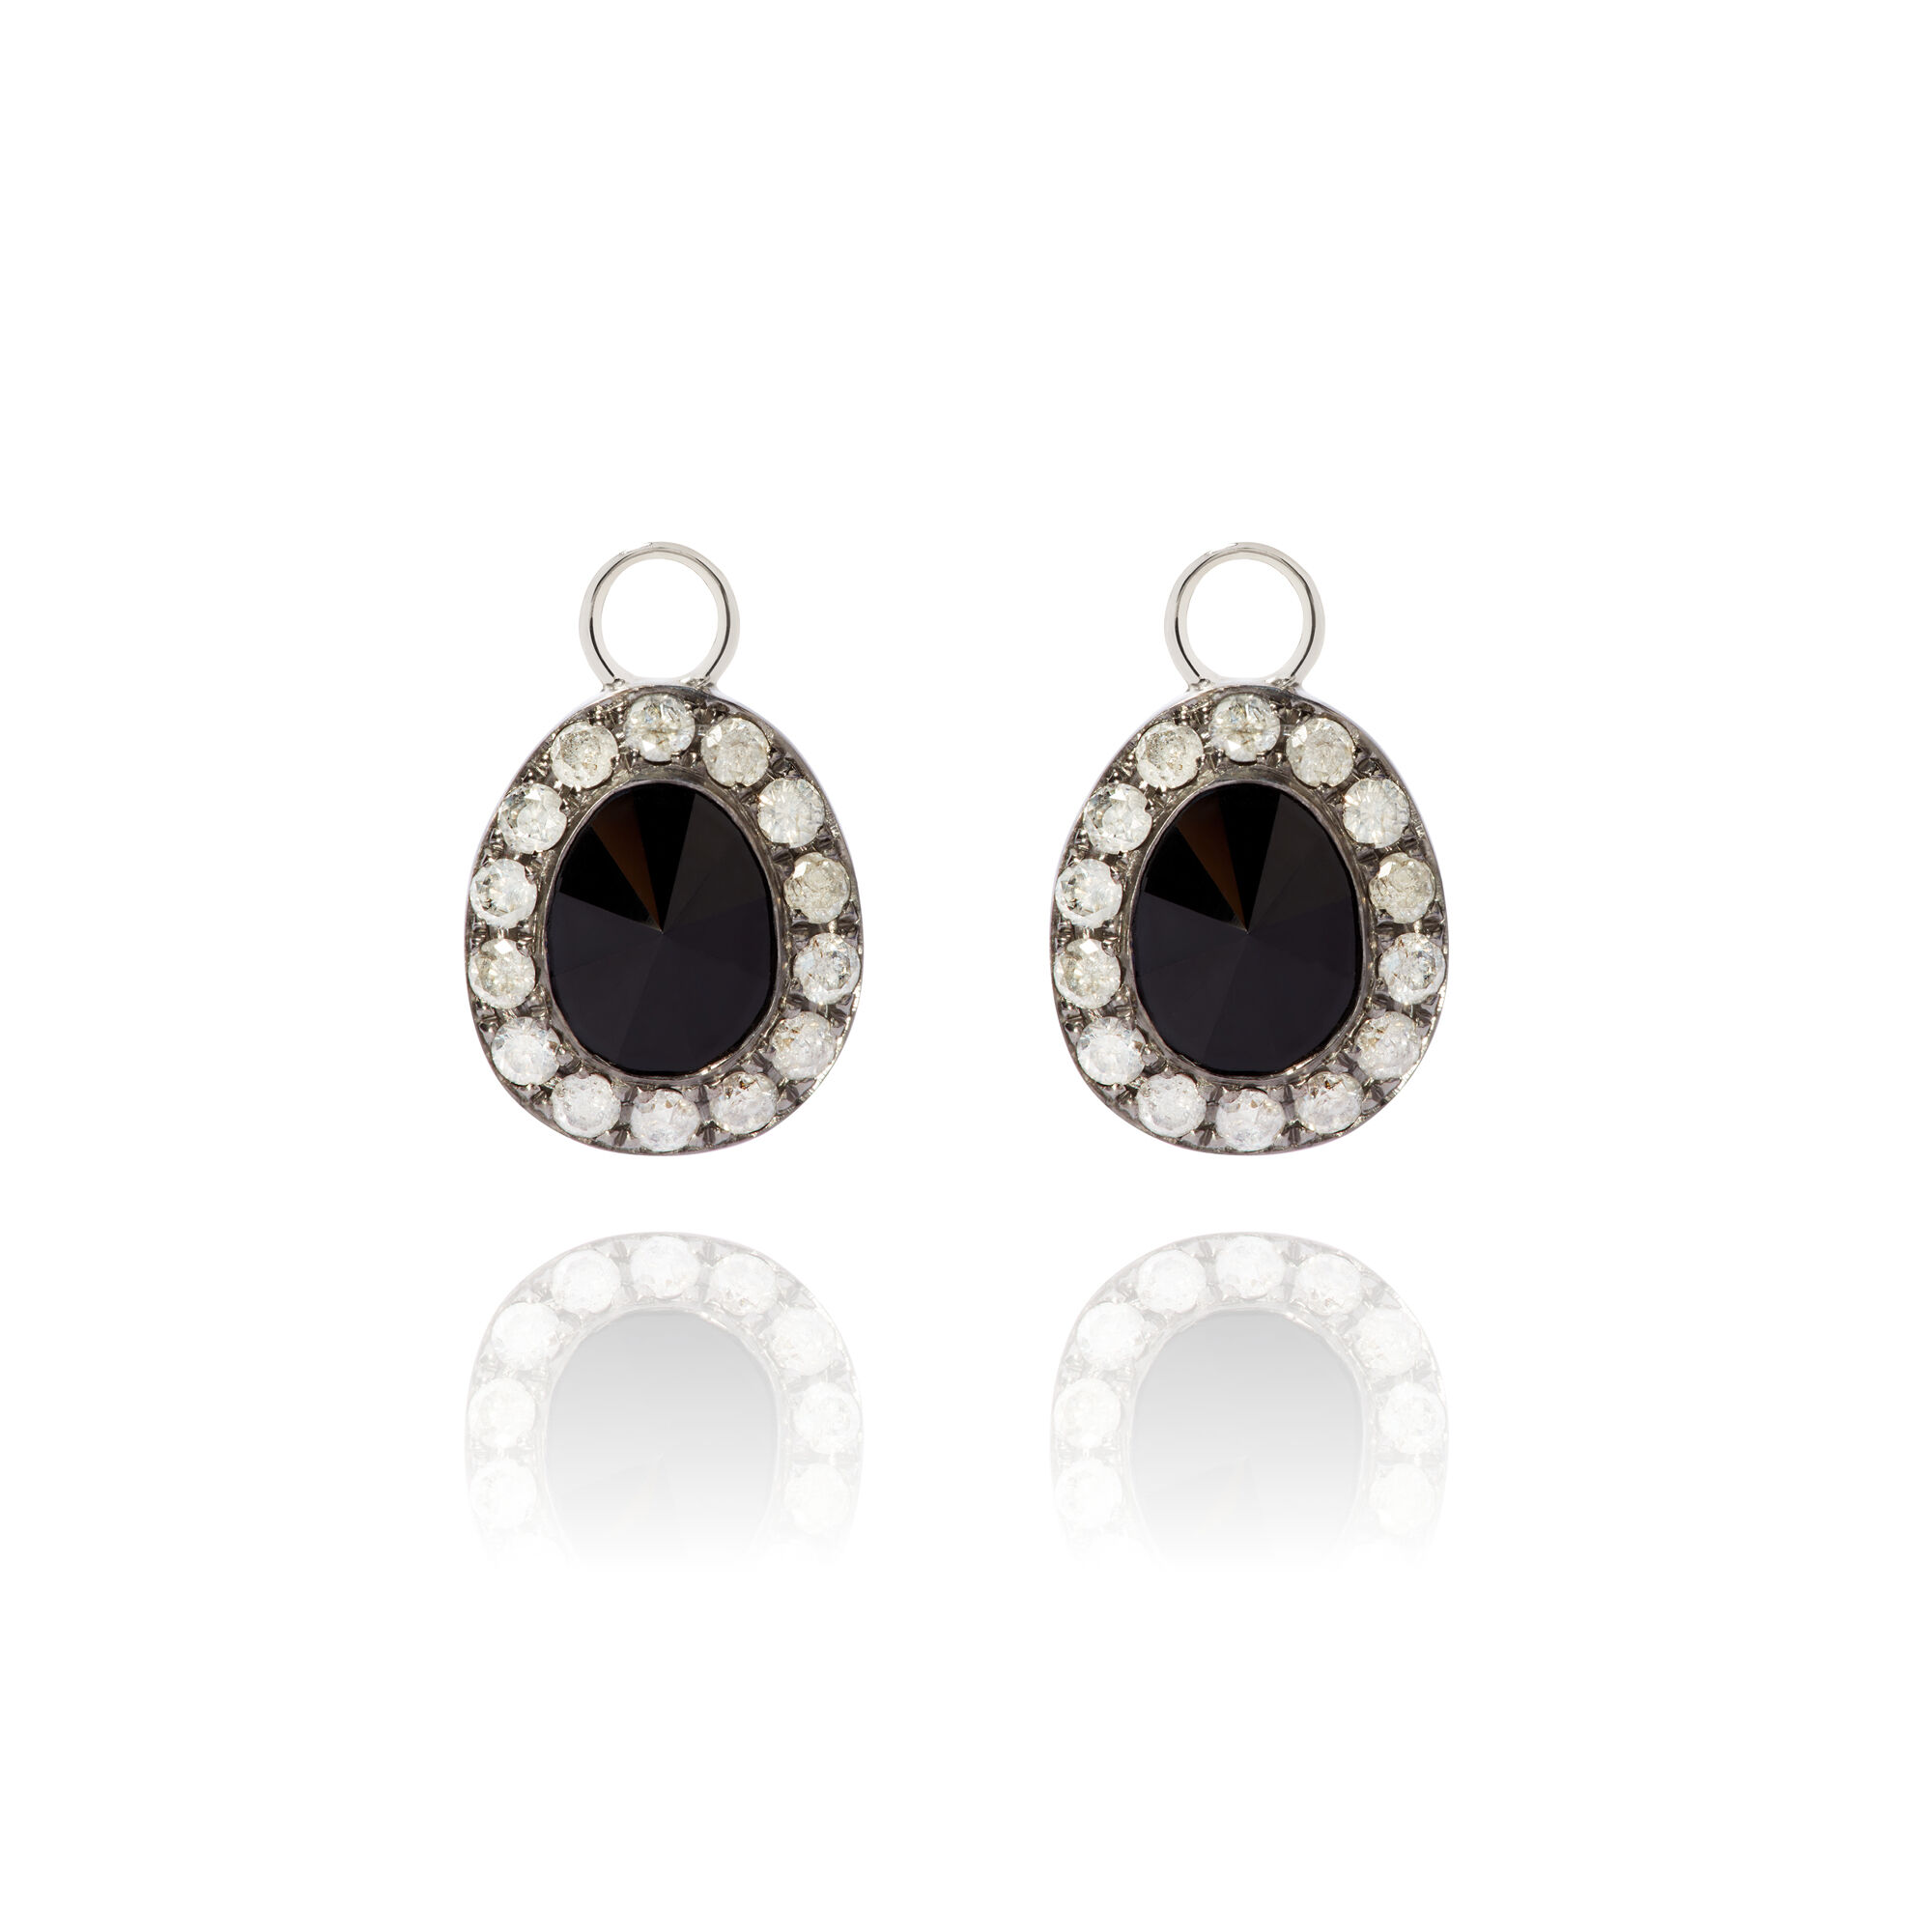 03fcfefc3 Dusty Diamonds 18ct White Gold Onyx Earring Drops. Click to expand